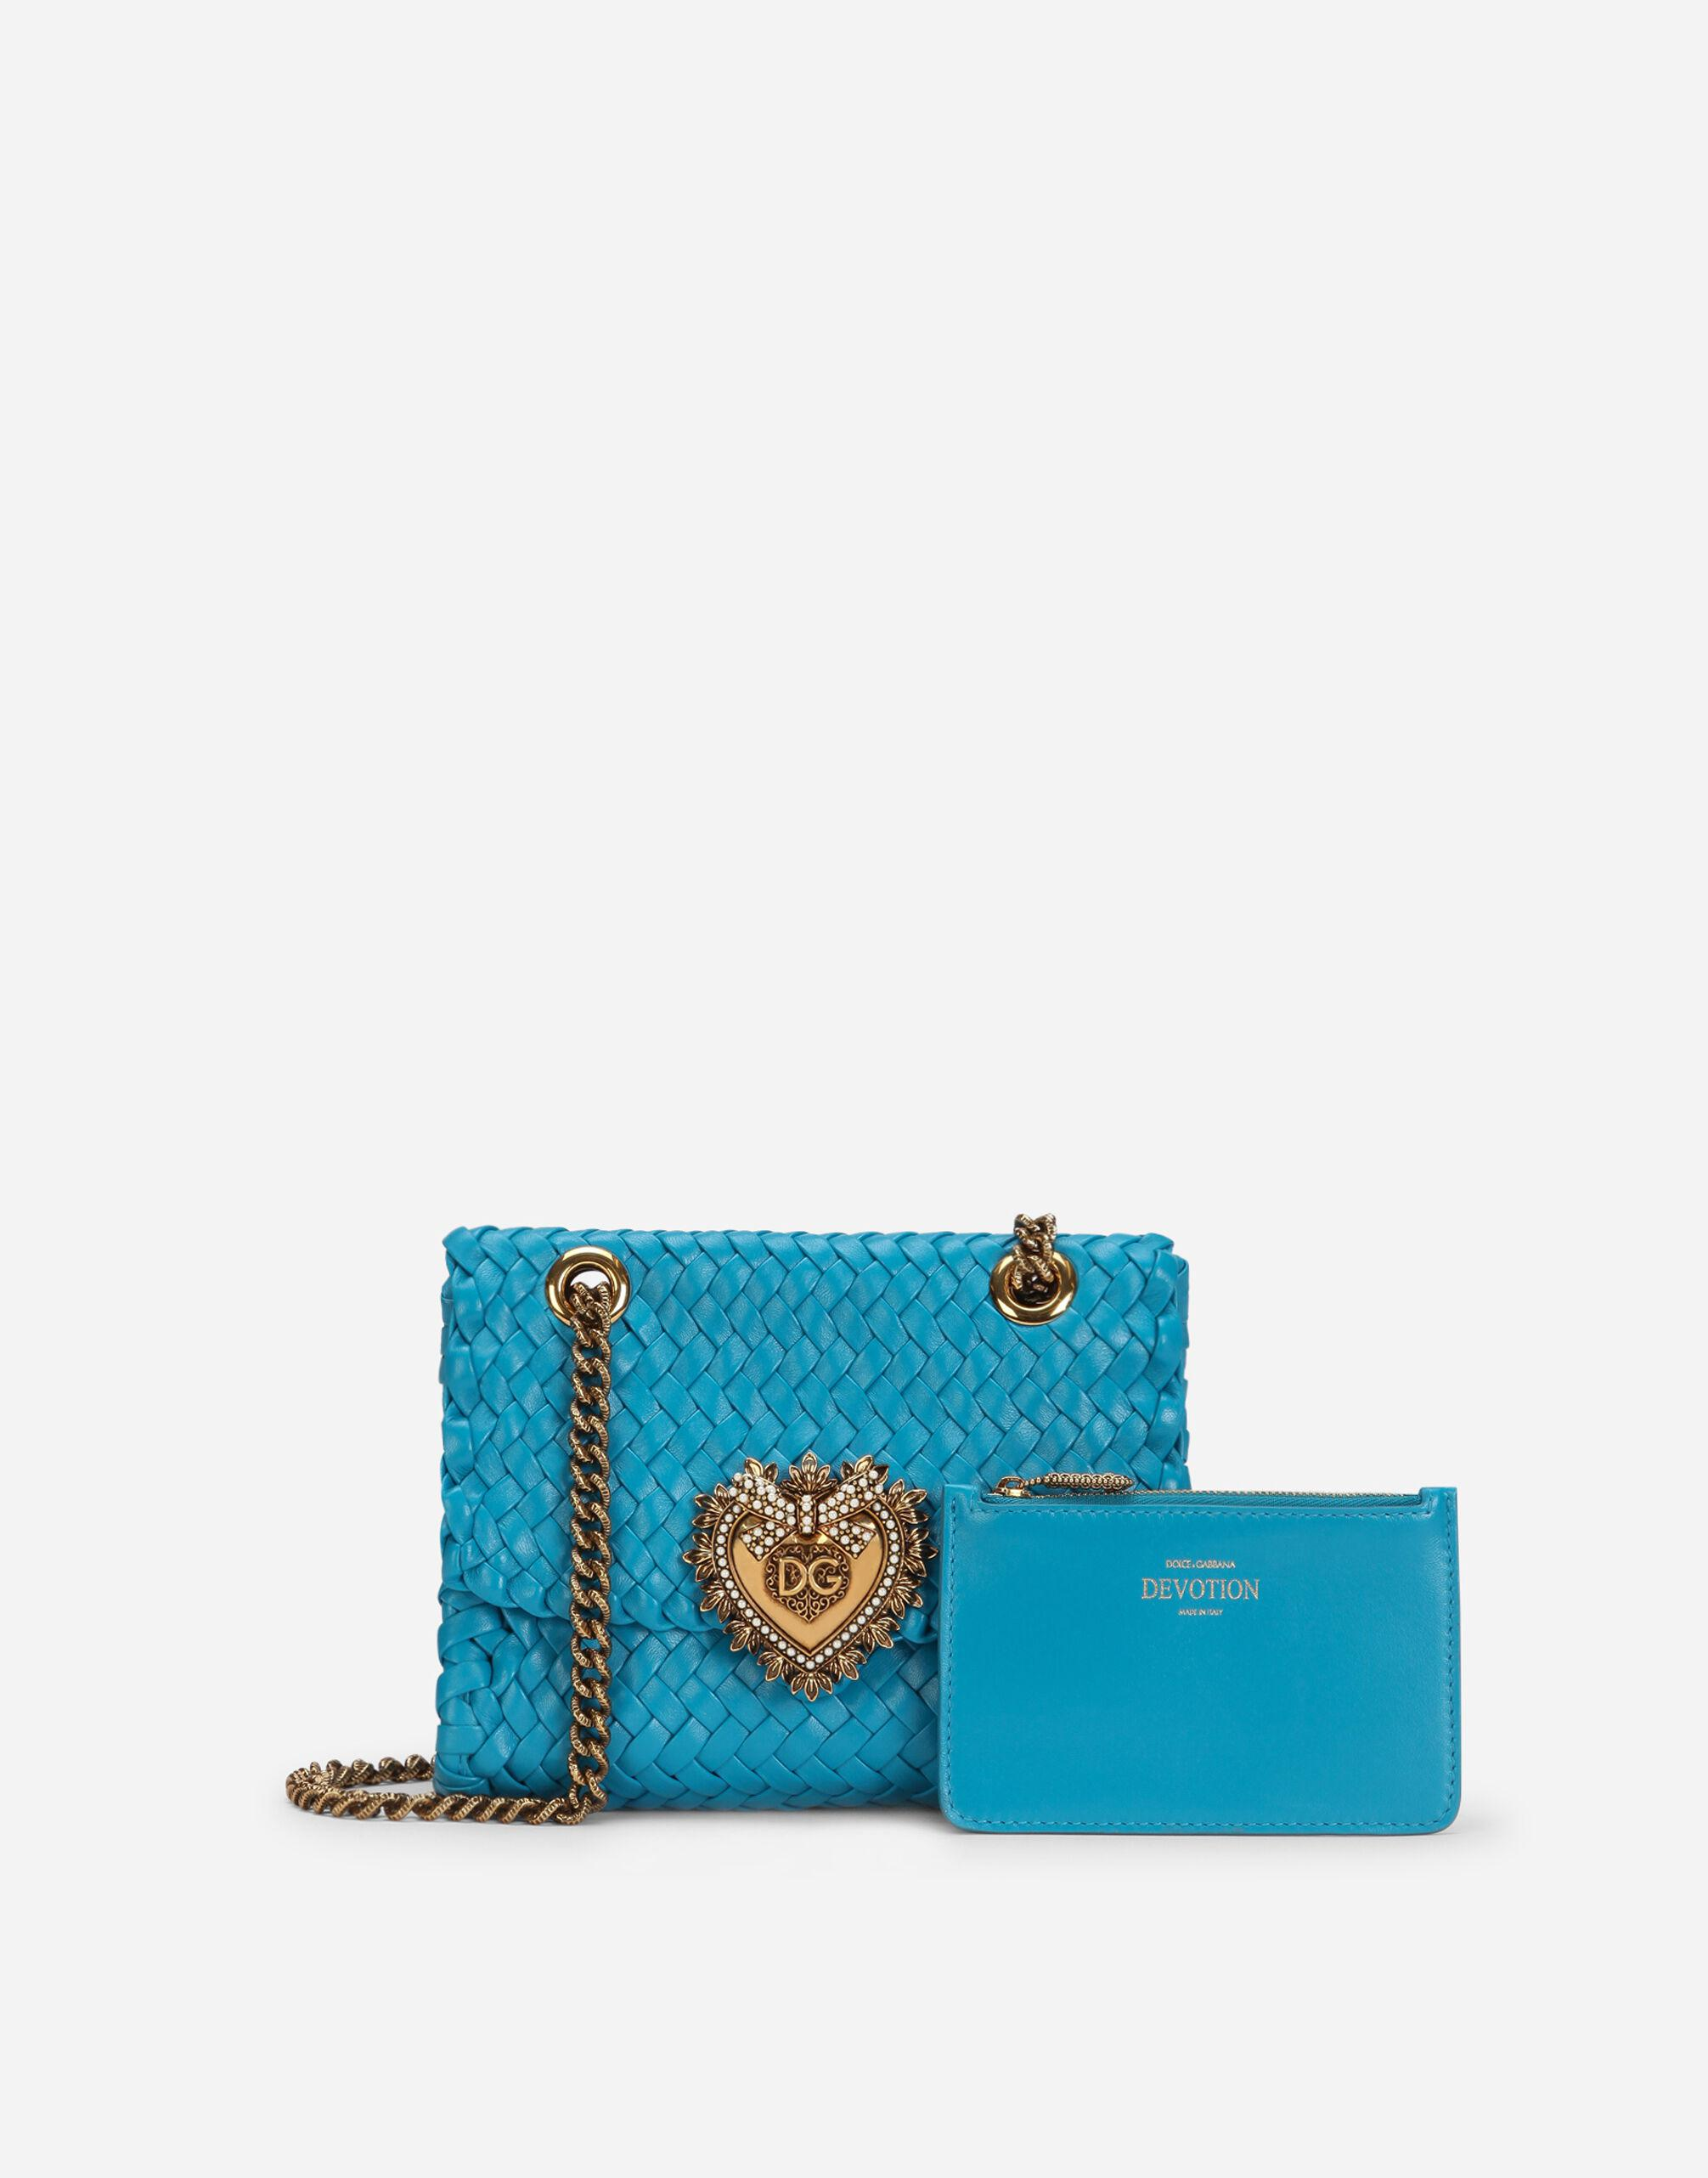 Small Devotion shoulder bag in woven nappa leather 3